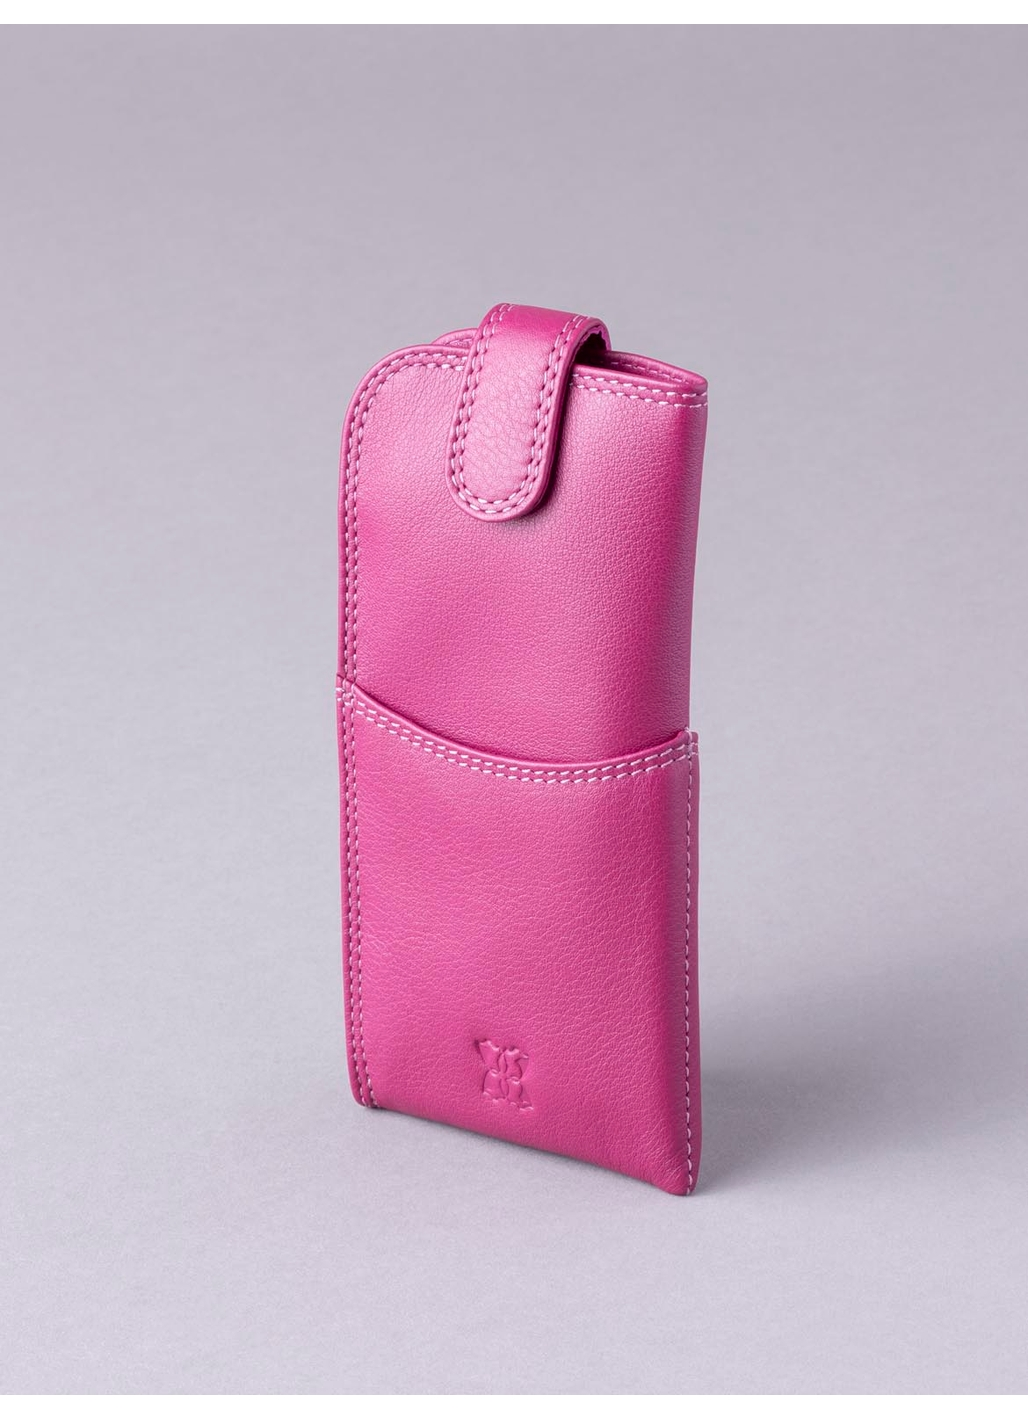 Leather Tab Glasses Case in Cranberry Pink